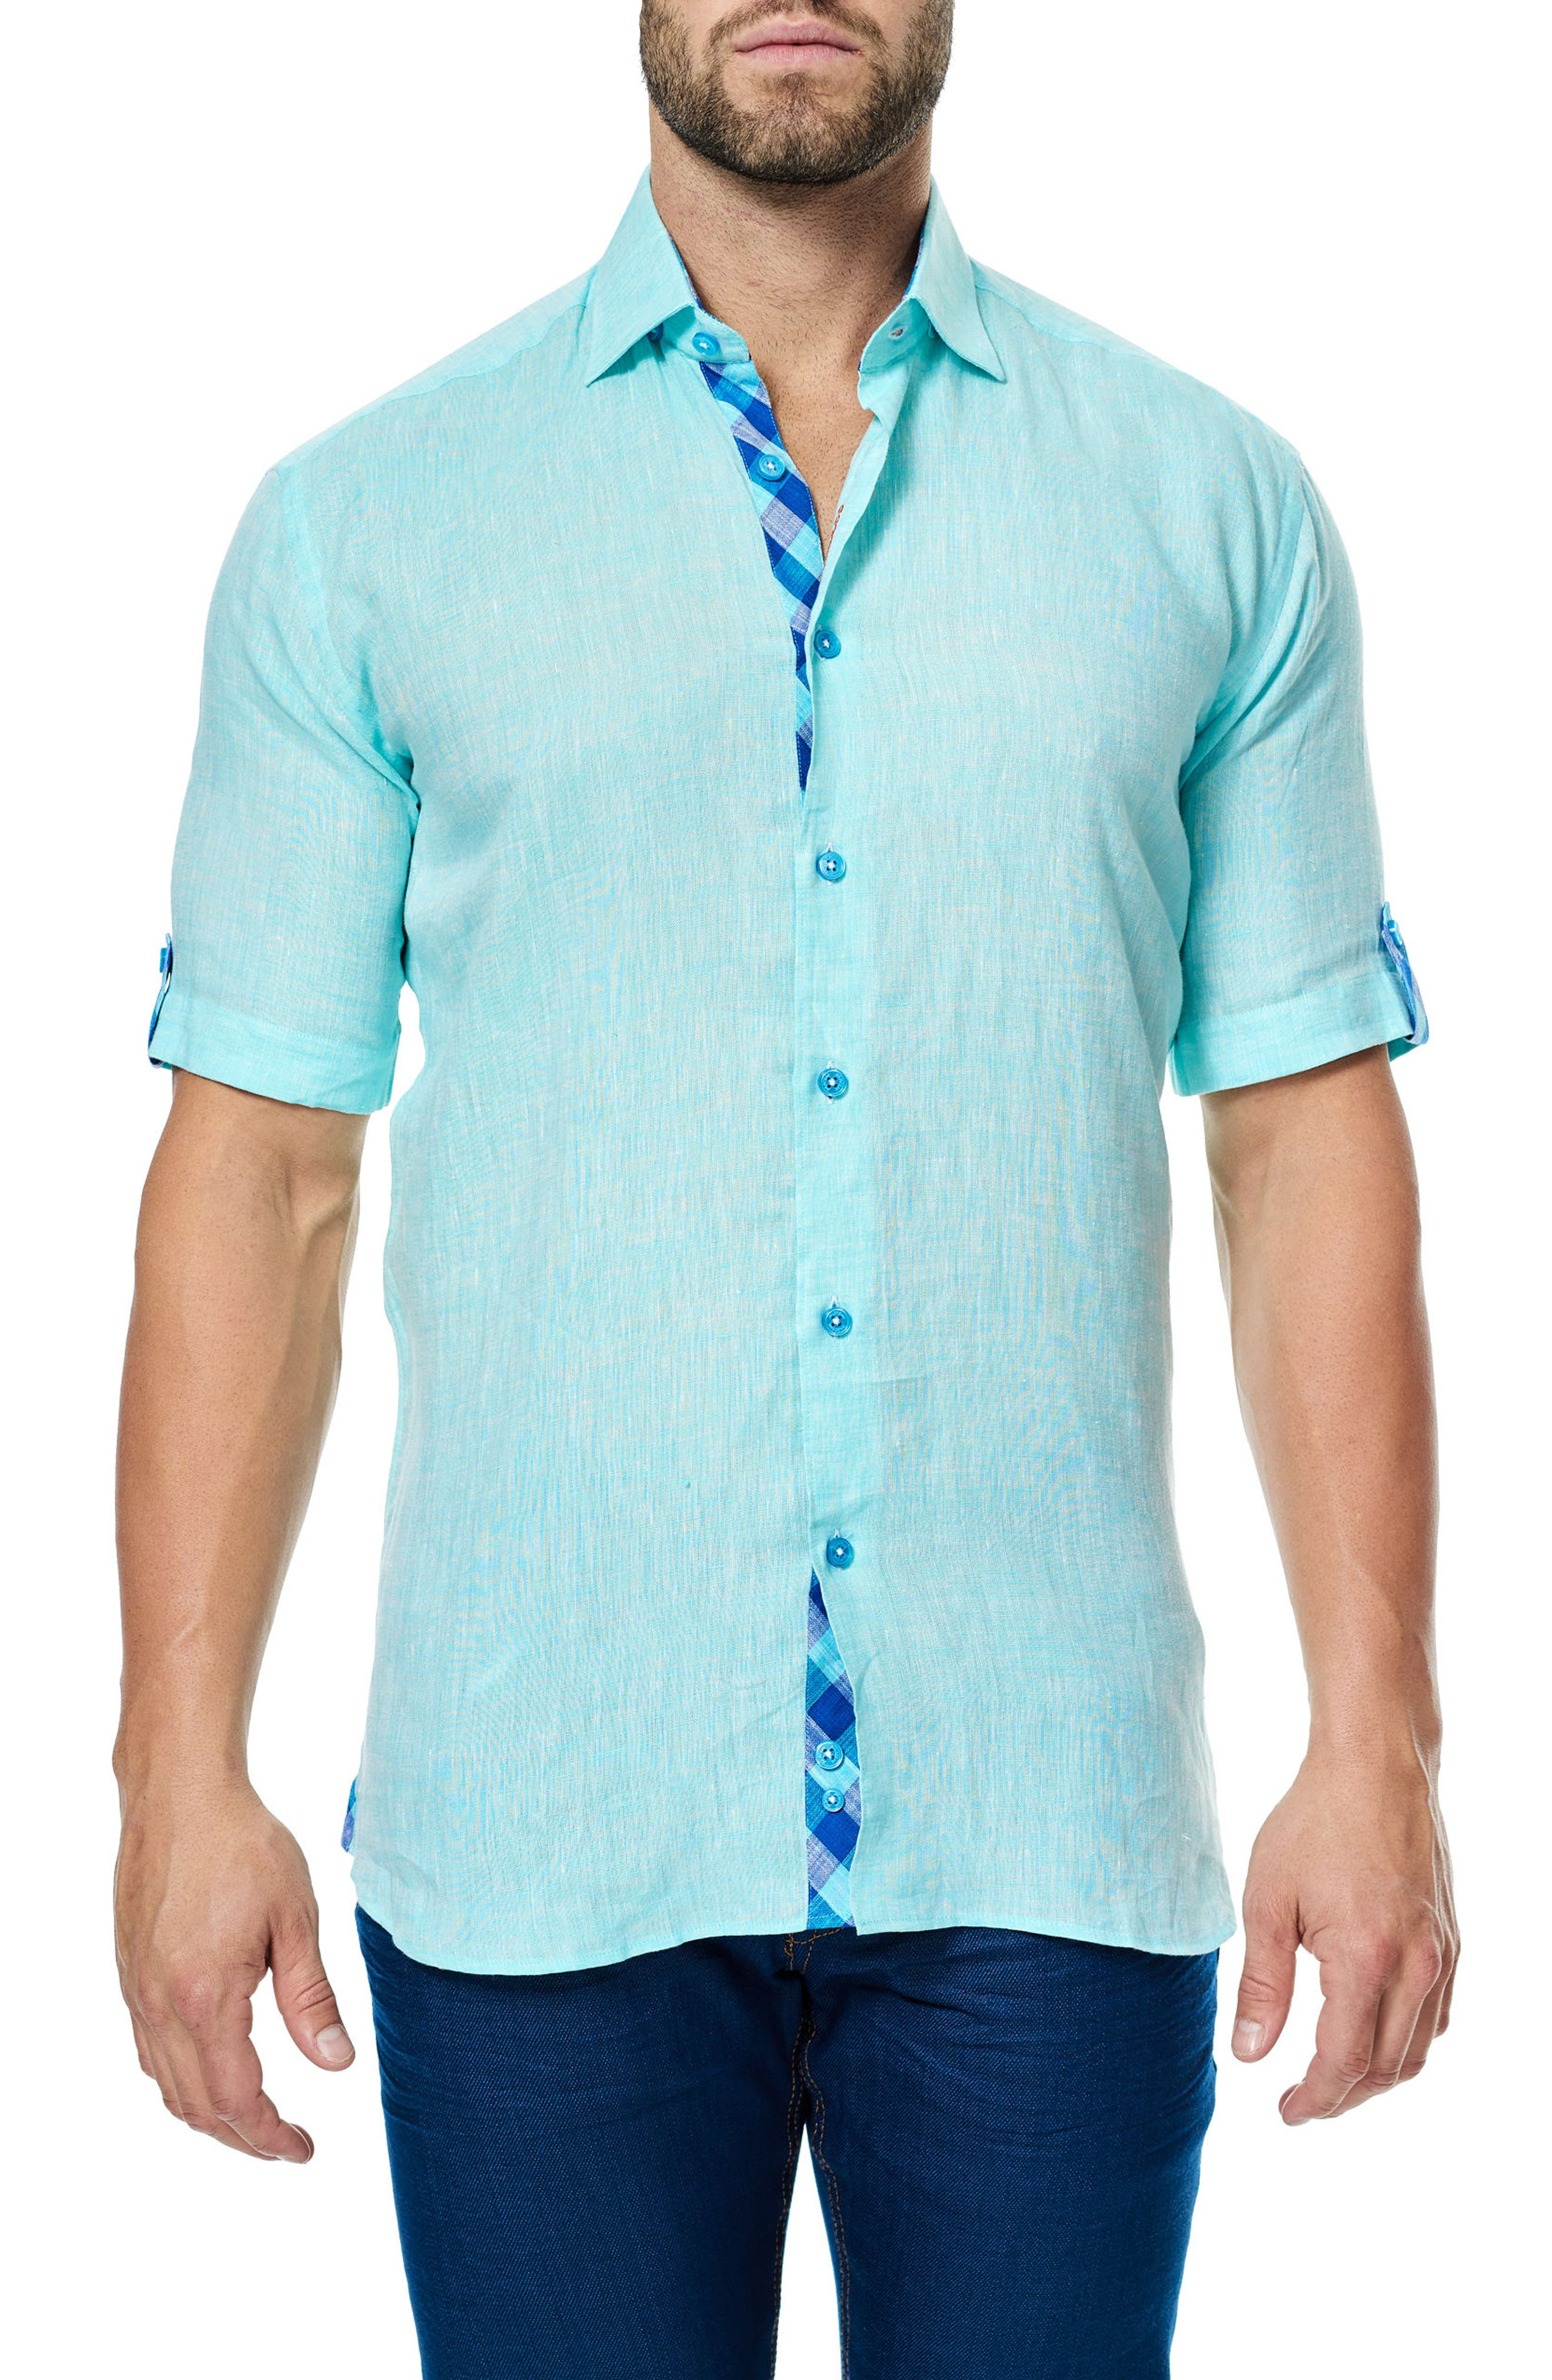 Fresh Sport Shirt,                         Main,                         color, 422